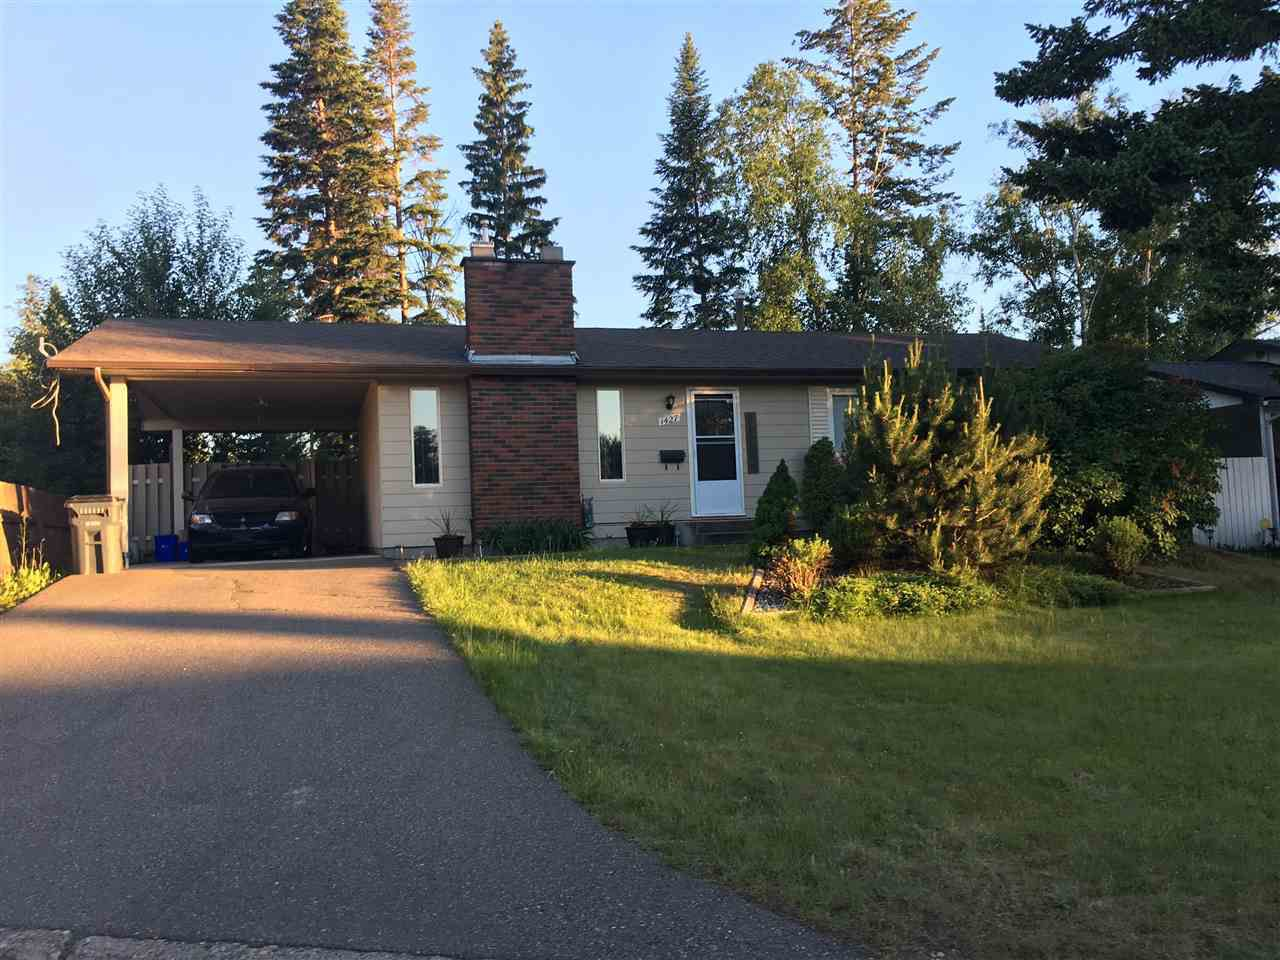 Main Photo: 1427 WARNER Avenue in Prince George: Fraserview House for sale (PG City West (Zone 71))  : MLS®# R2181742